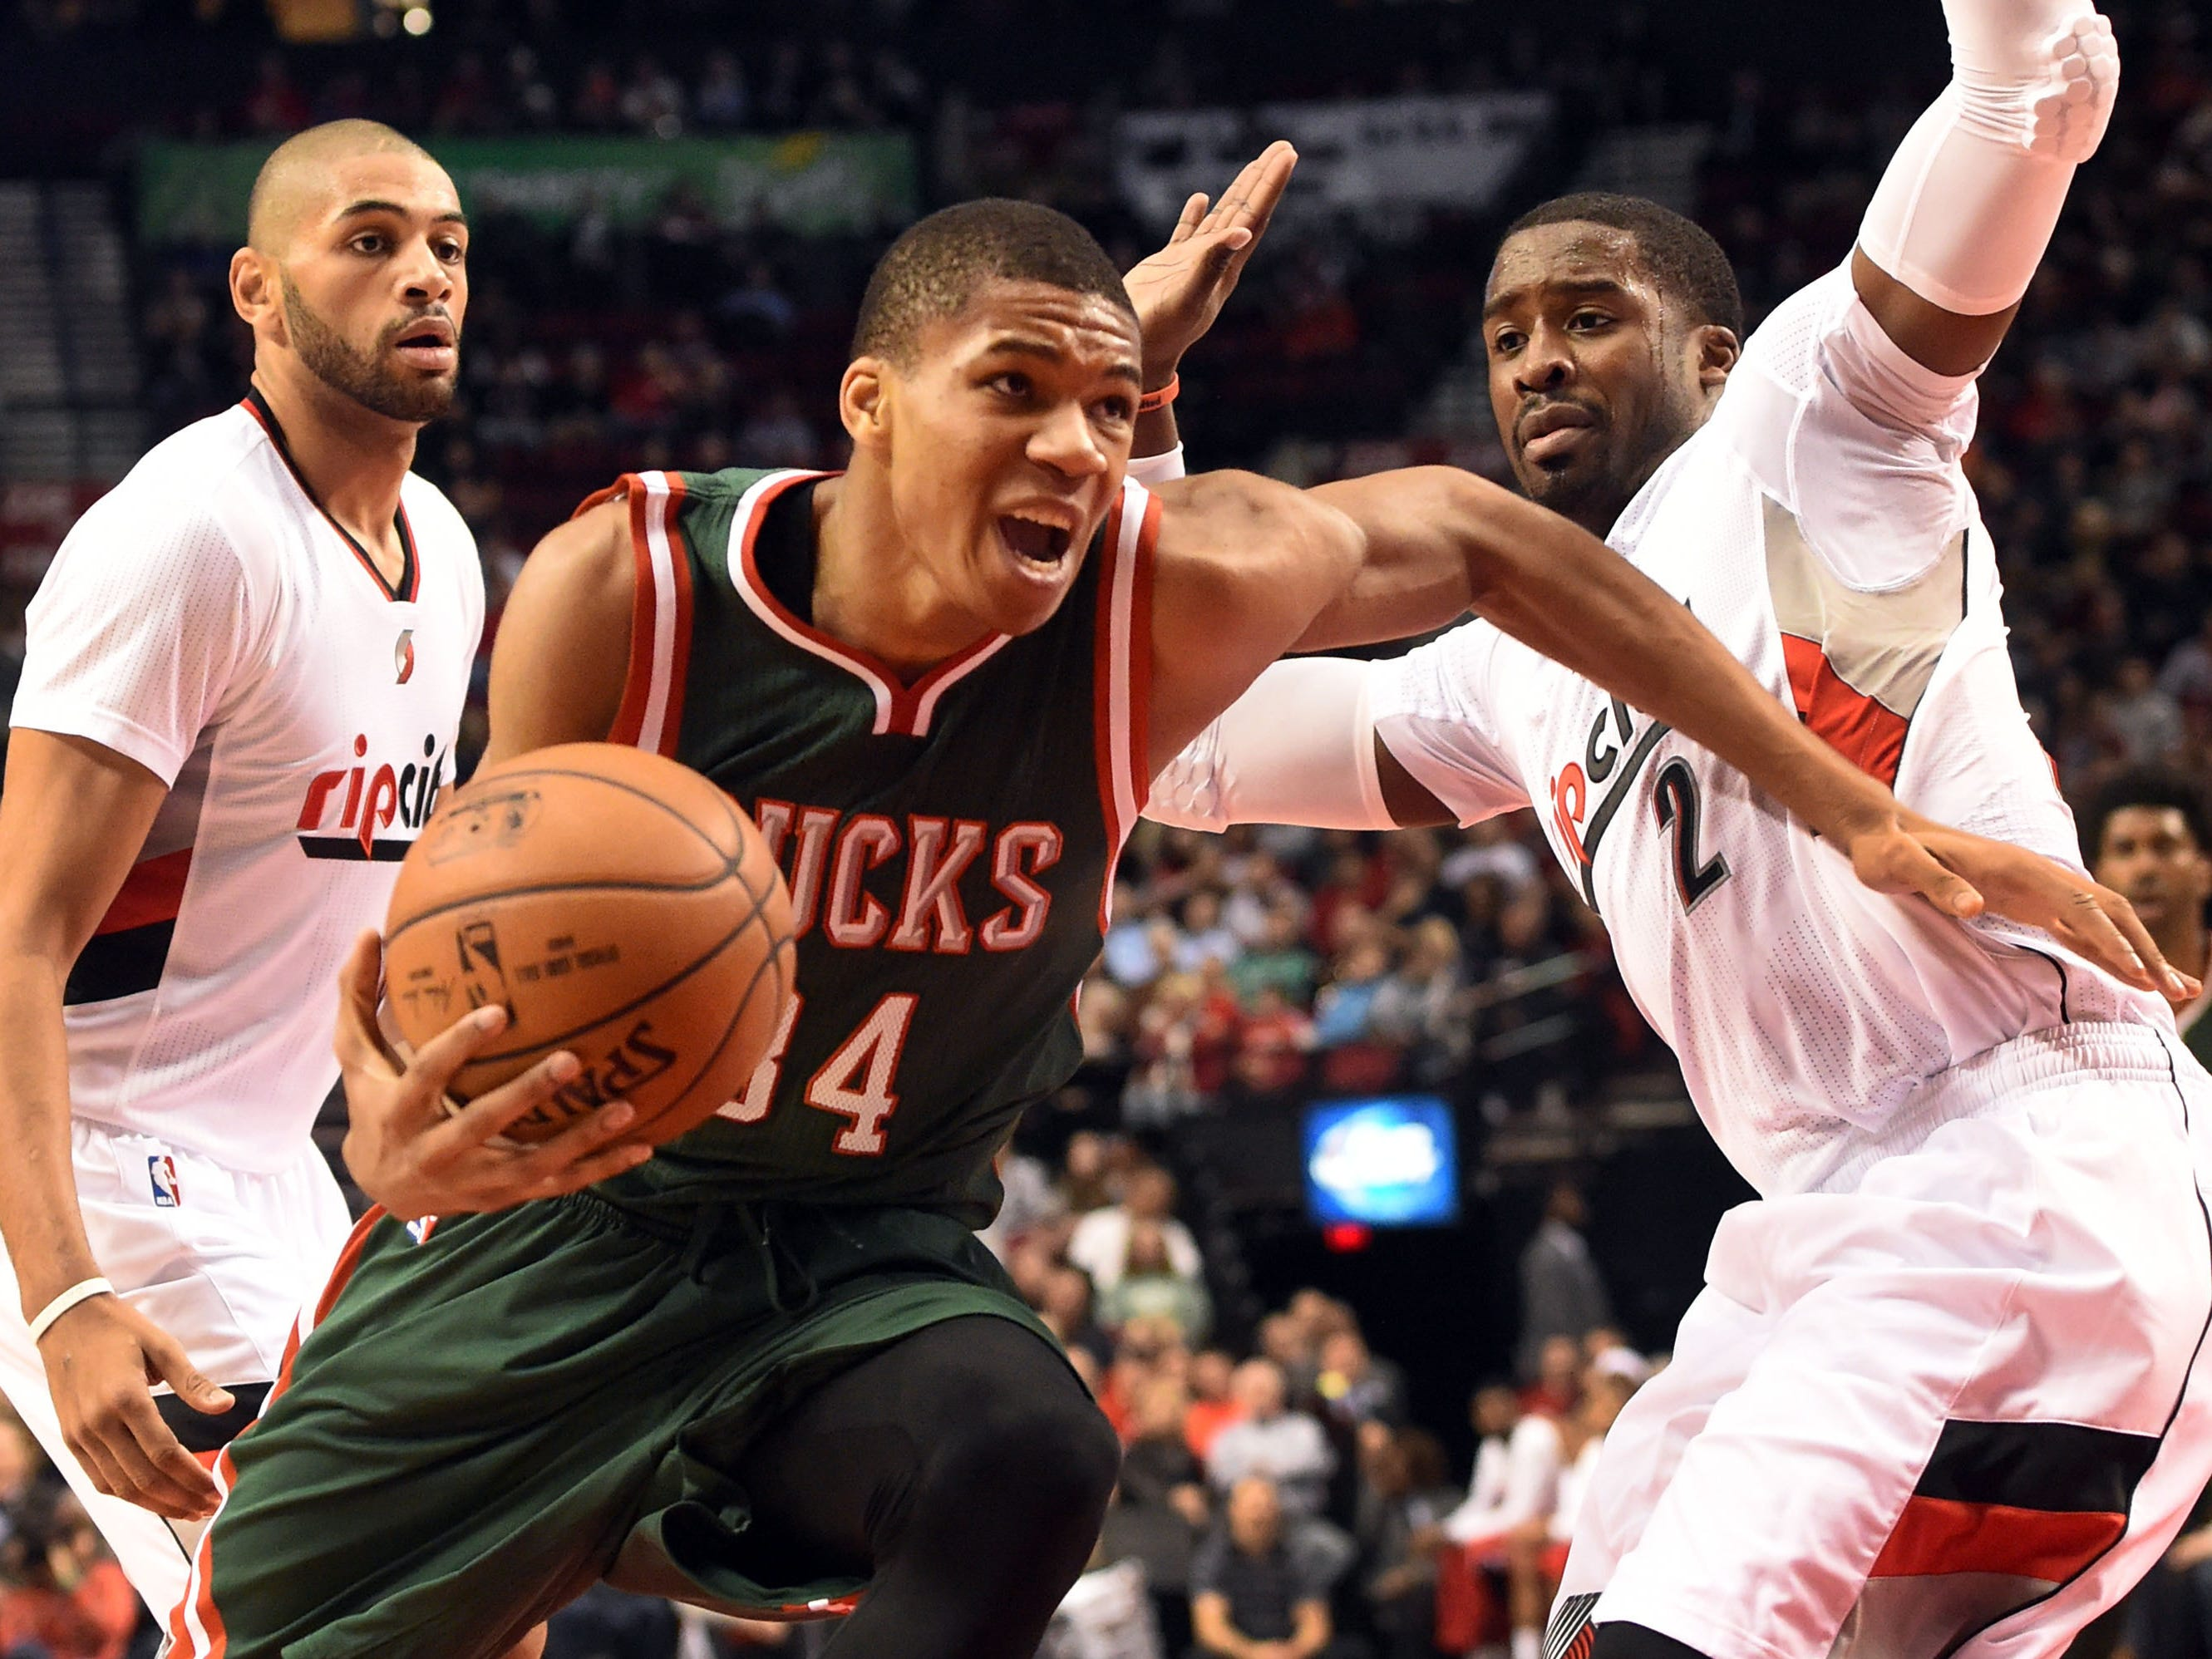 Antetokounmpo drives to the basket on Nicolas Batum and Wesley Matthews during a 2014 game.